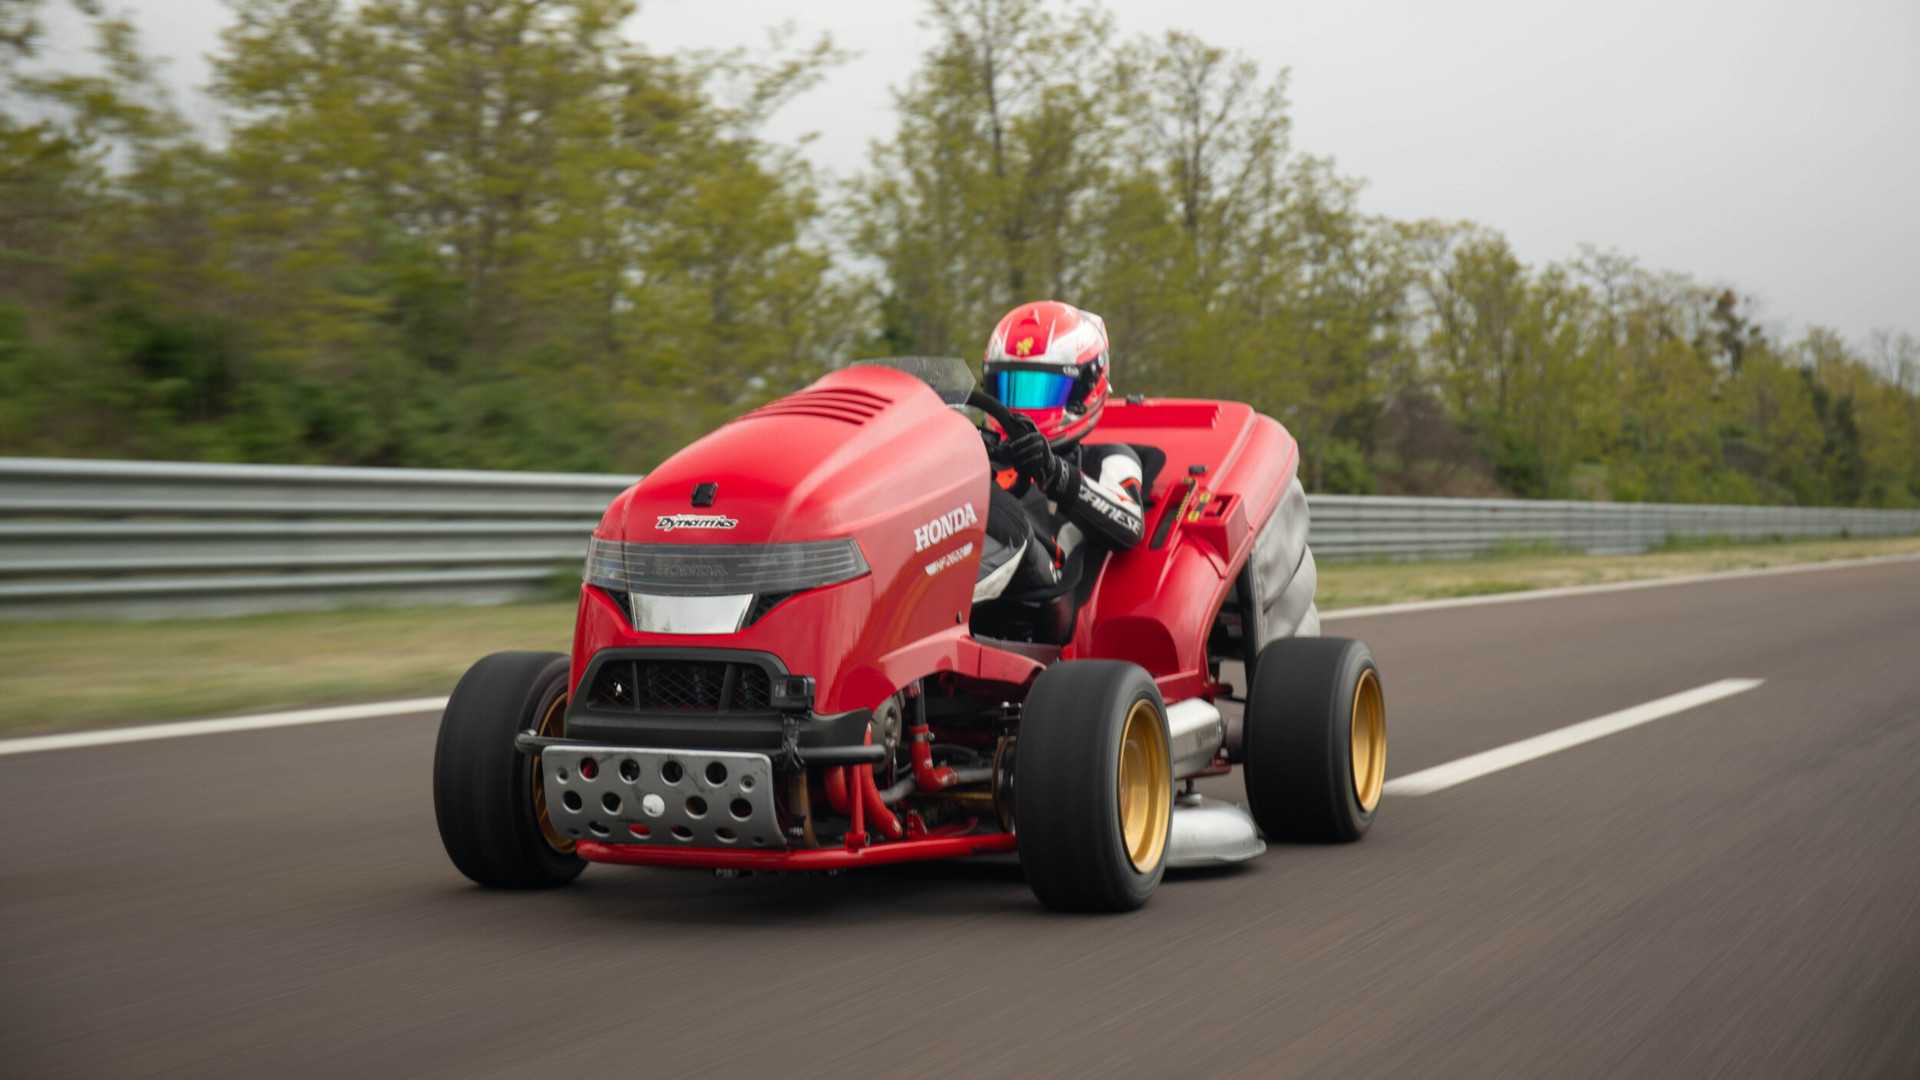 [Image: honda-mean-mower-racing-front-view.jpg]